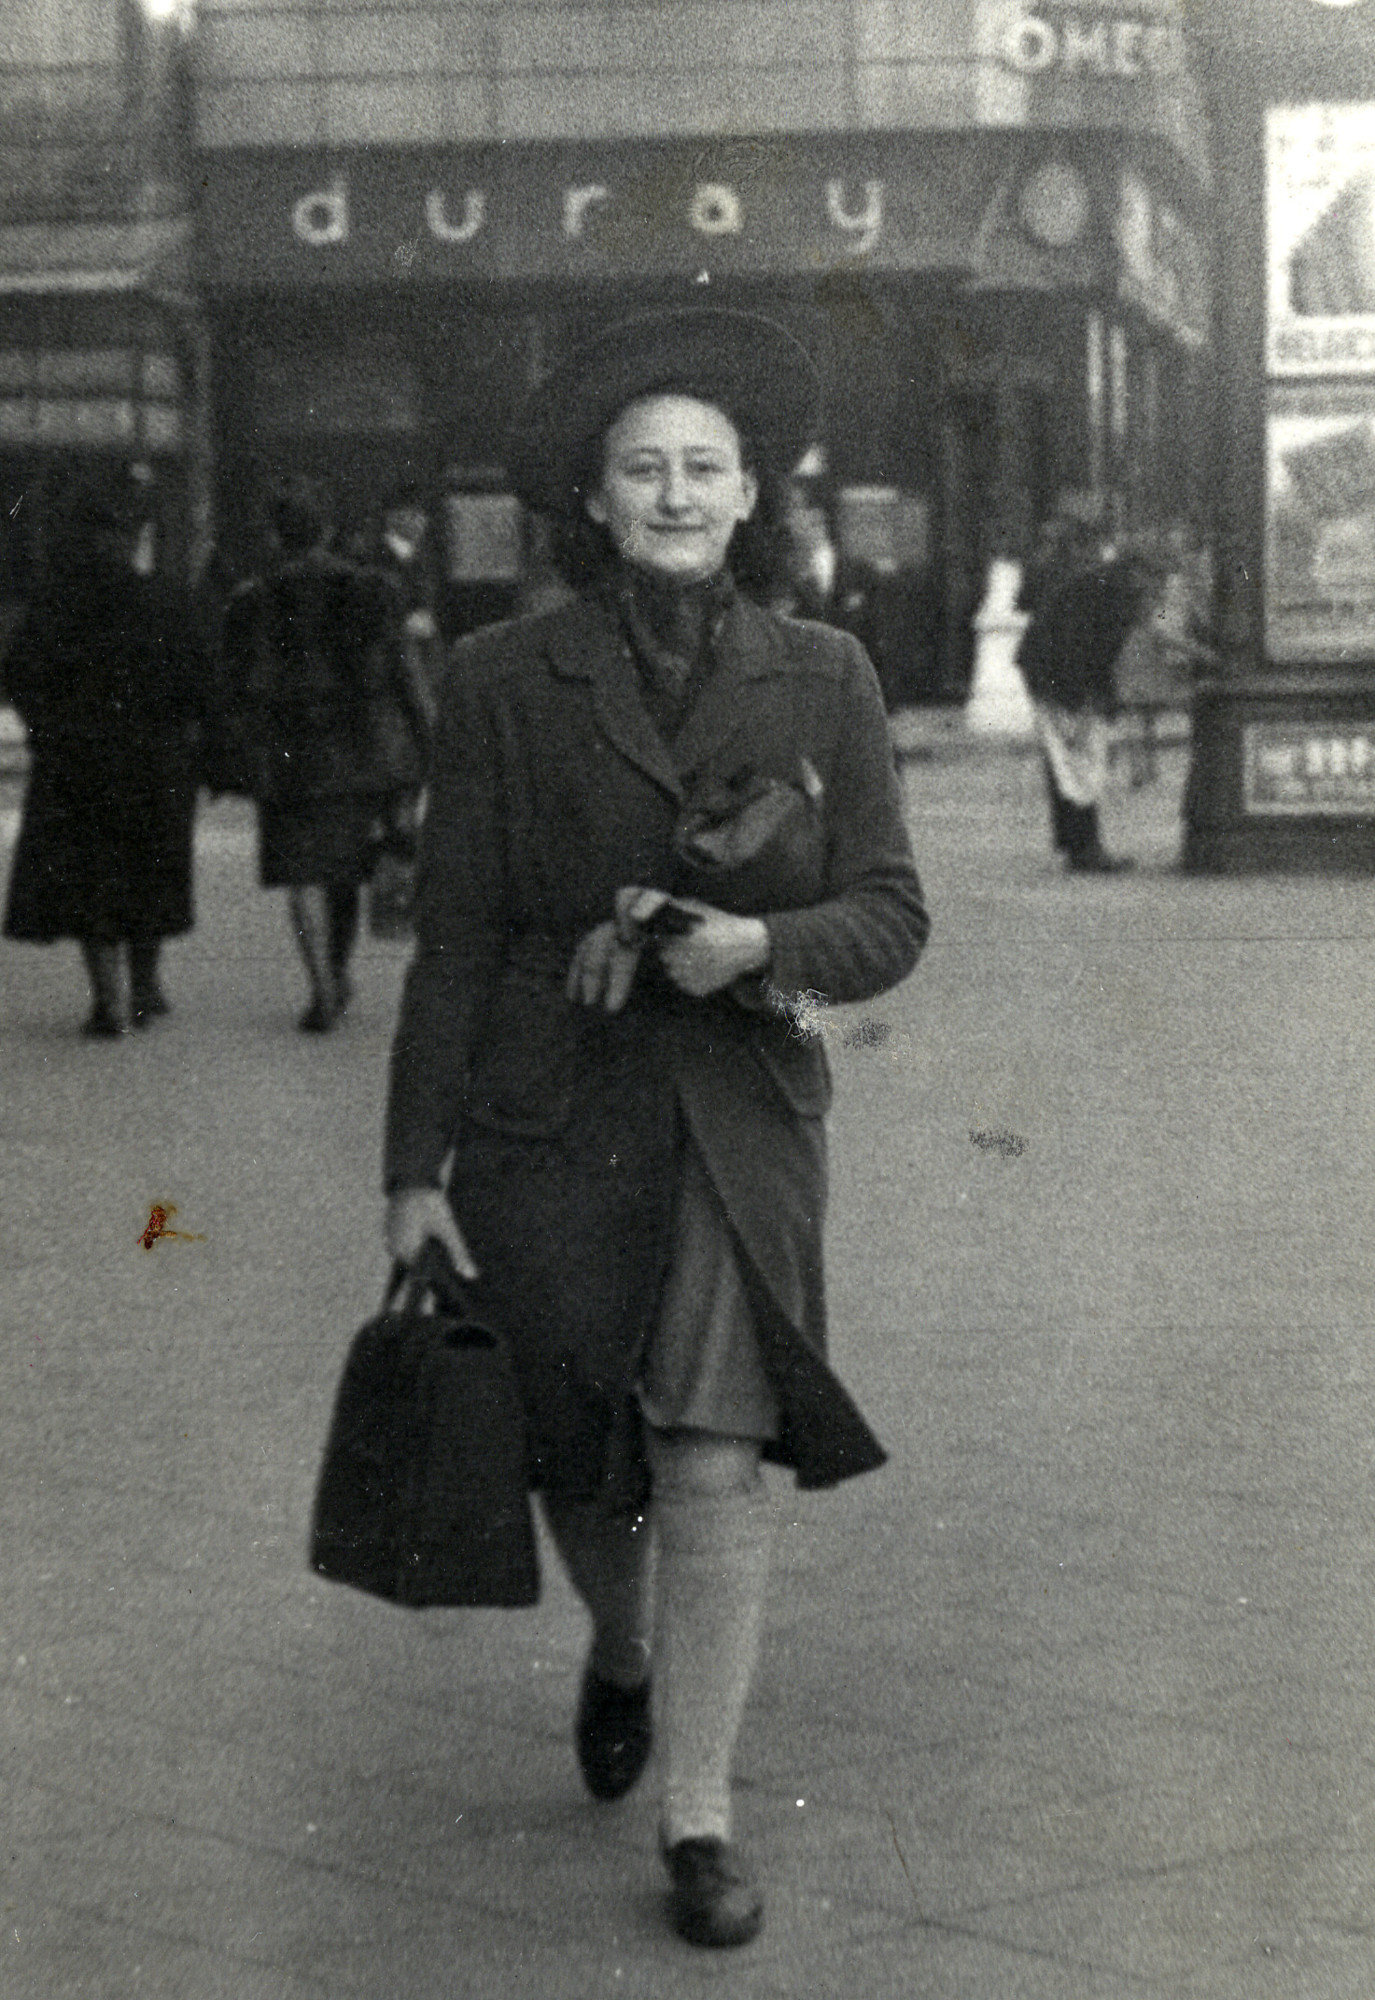 Eva Isboutsky walking down the street, covering the Star of David badge that she has been forced to wear.